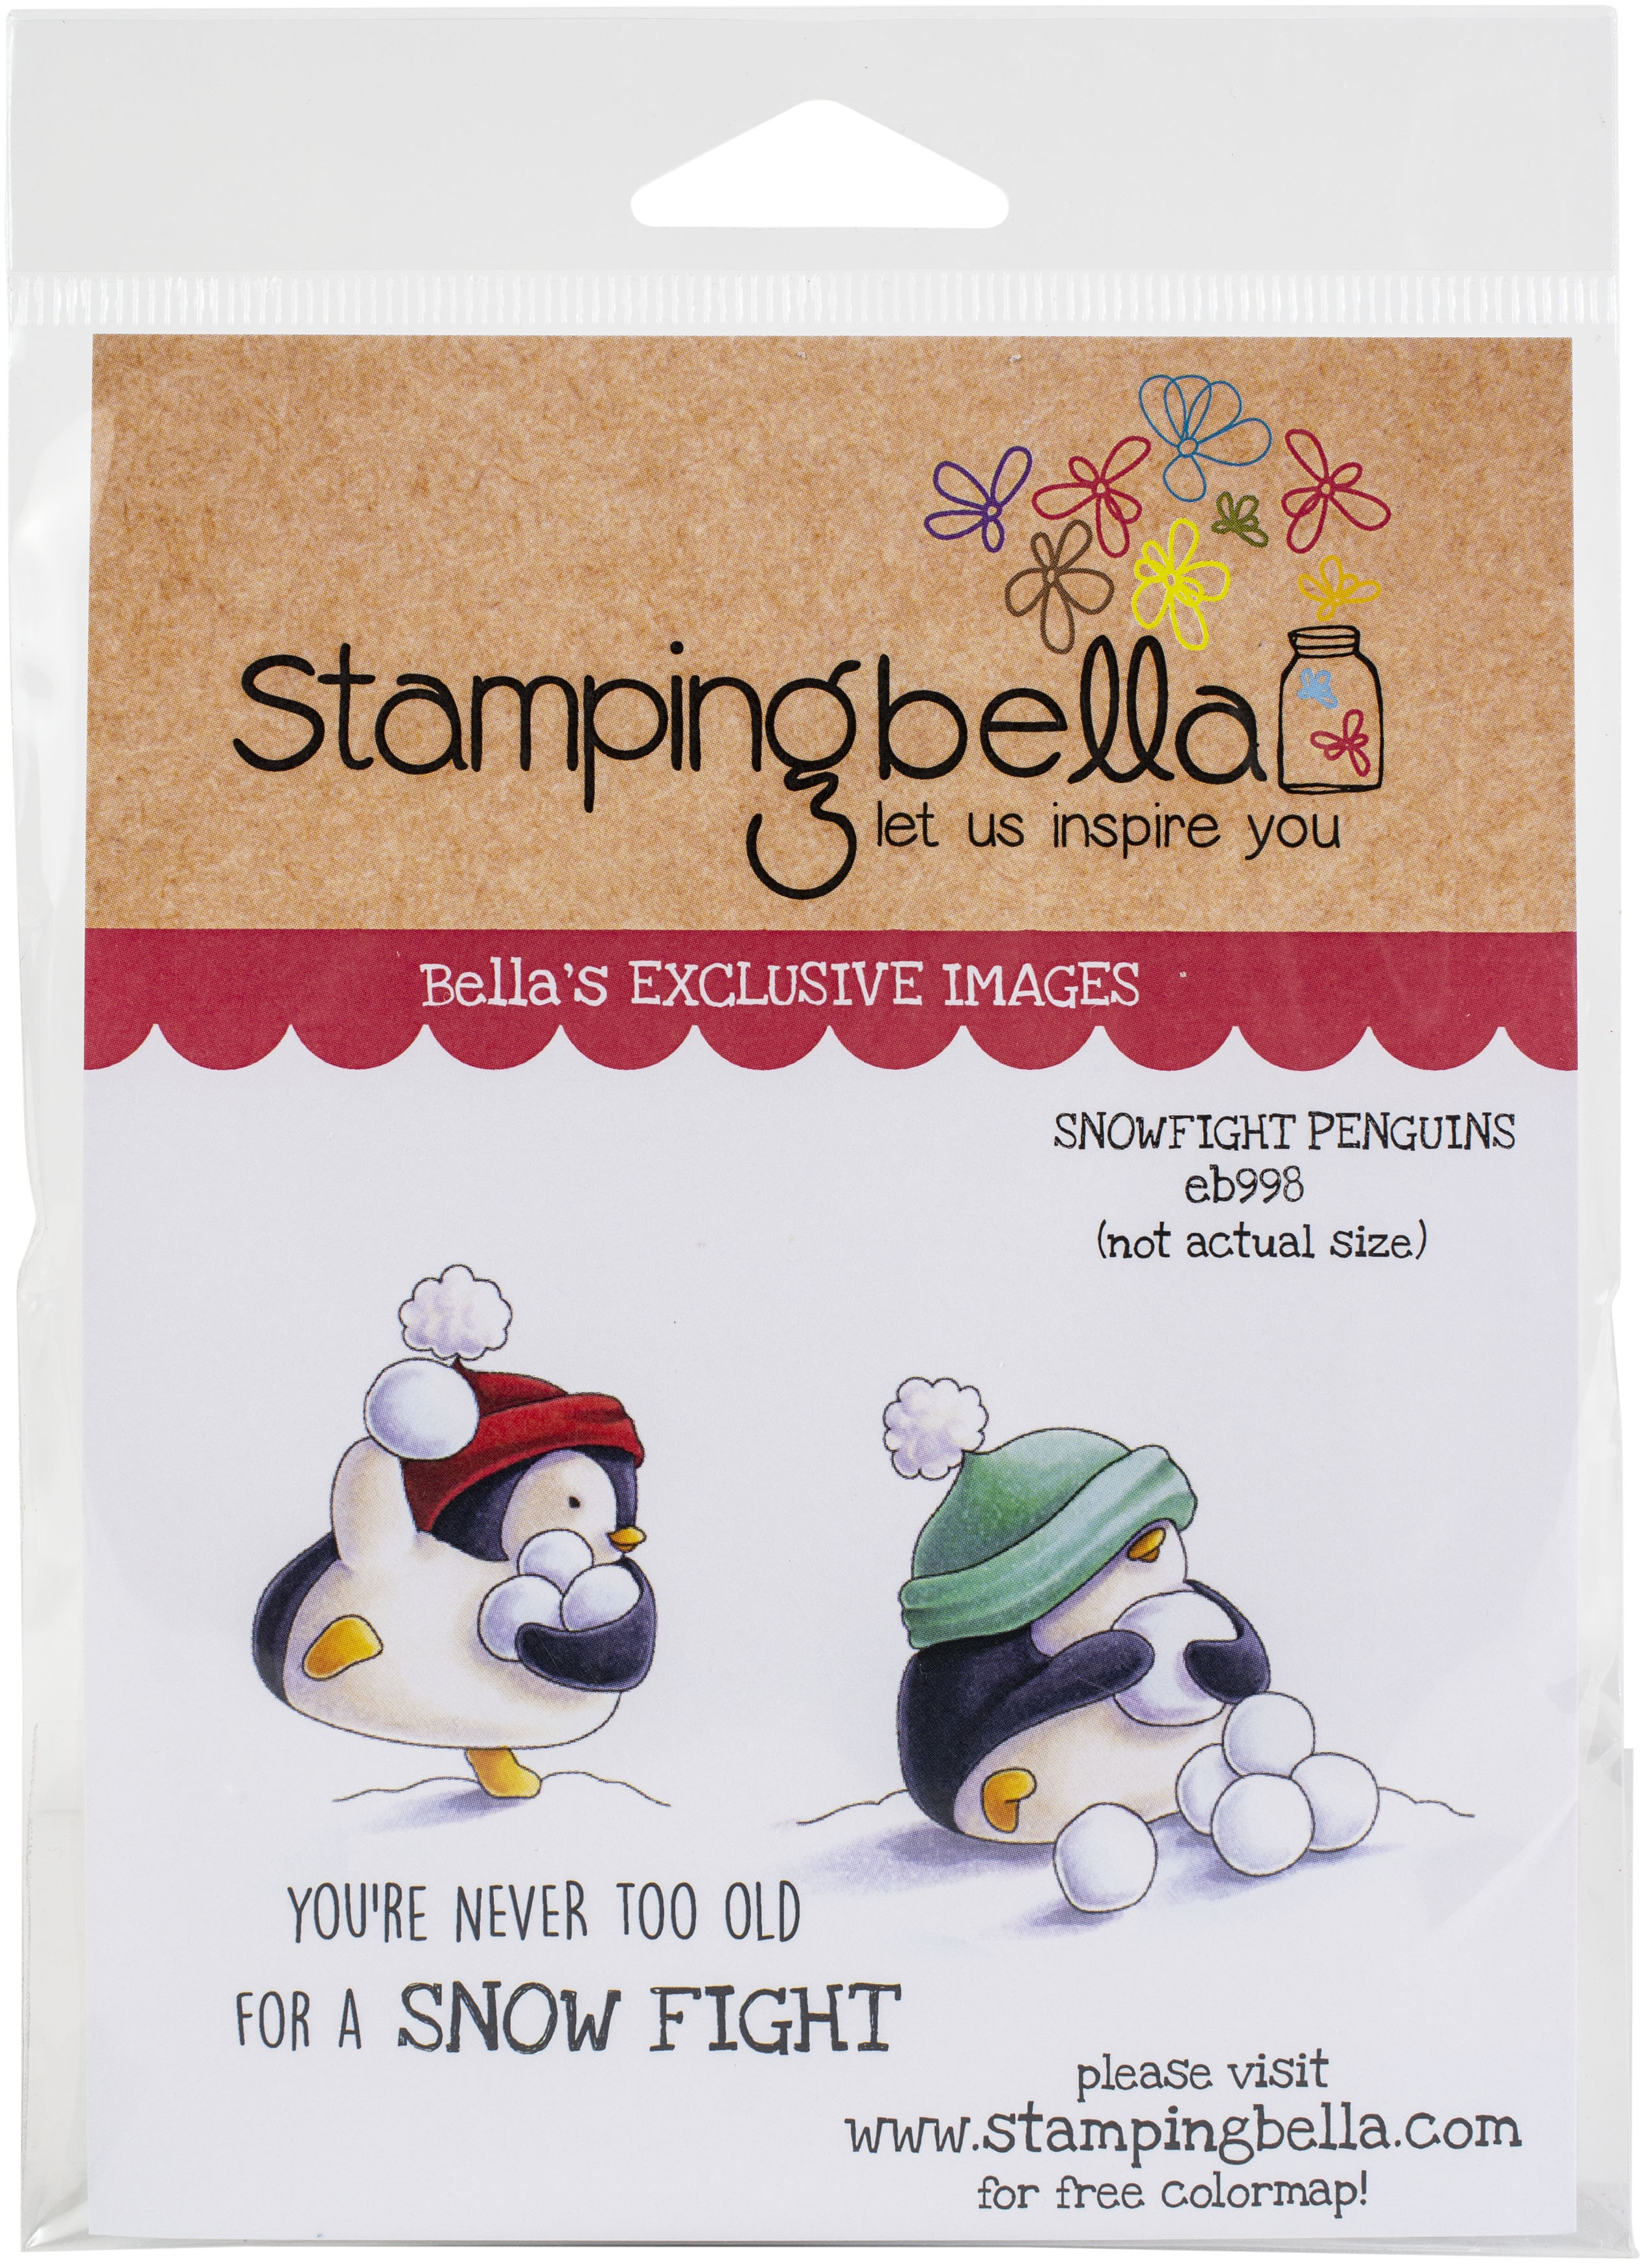 Stamping Bella Cling Stamps - Snowfight Penguins